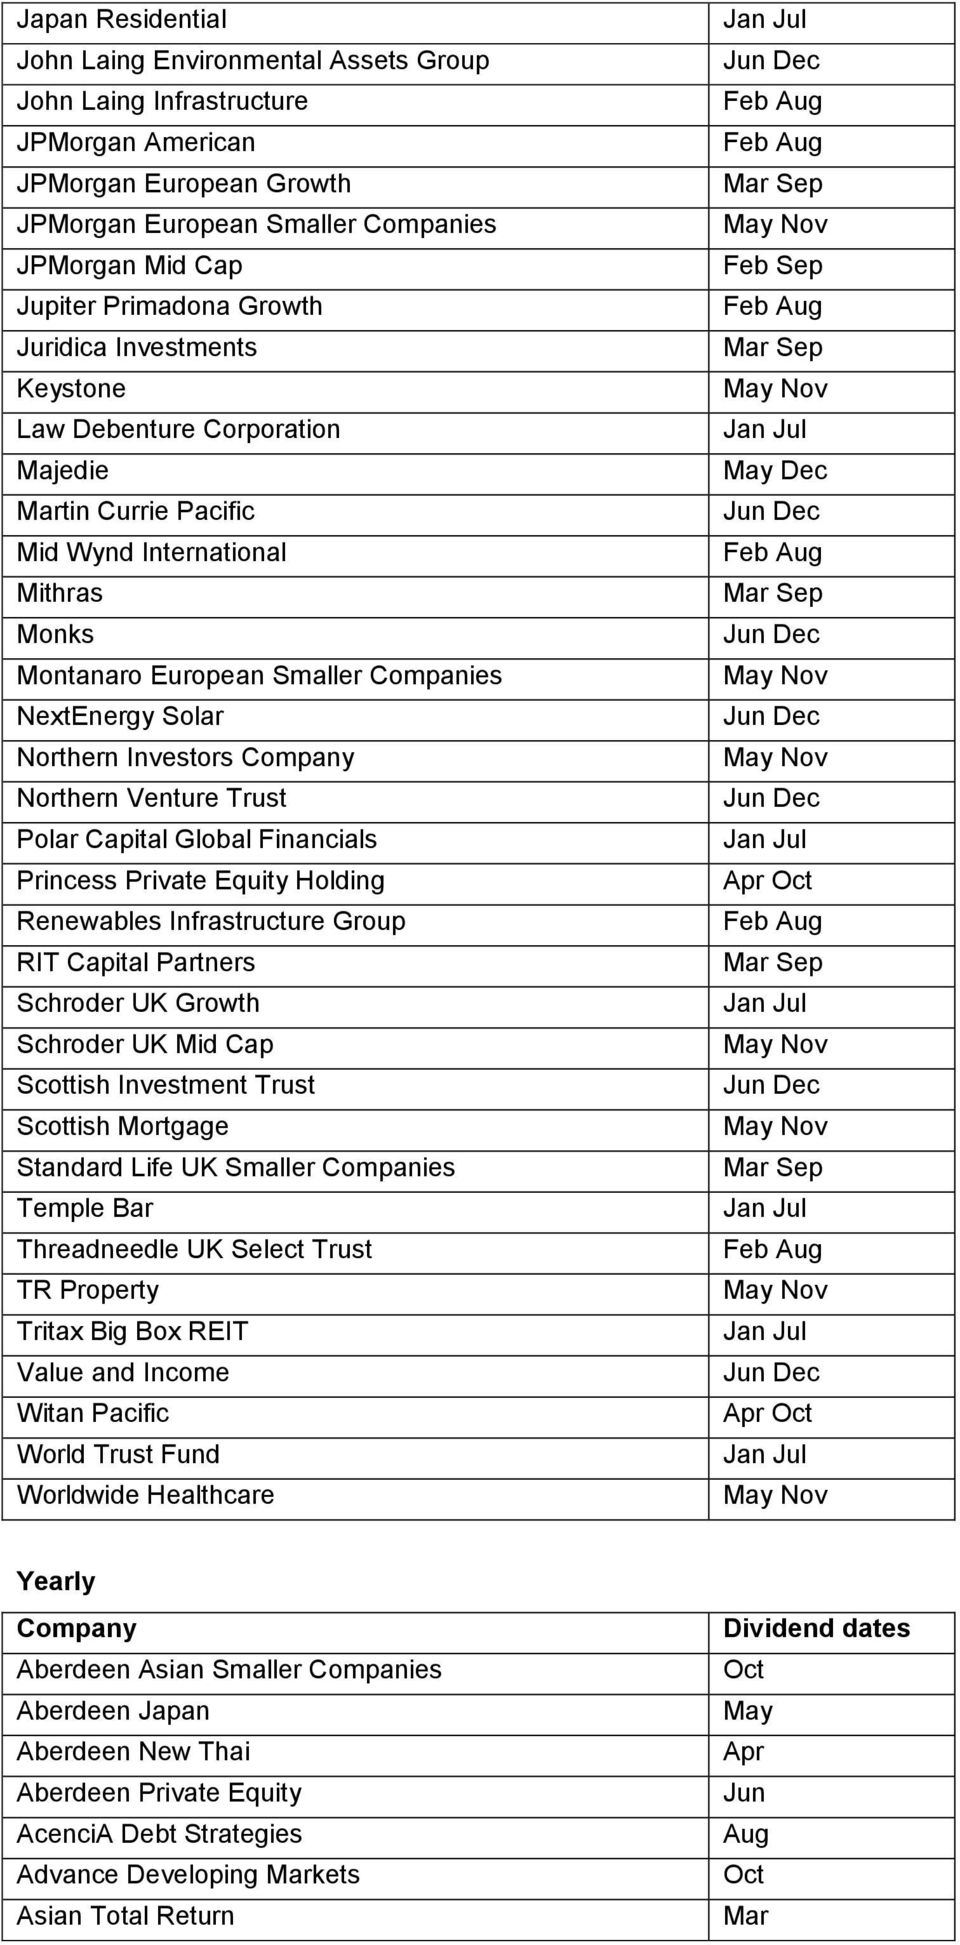 Northern Venture Trust Polar Capital Global Financials Princess Private Equity Holding Renewables Infrastructure Group RIT Capital Partners Schroder UK Growth Schroder UK Mid Cap Scottish Investment